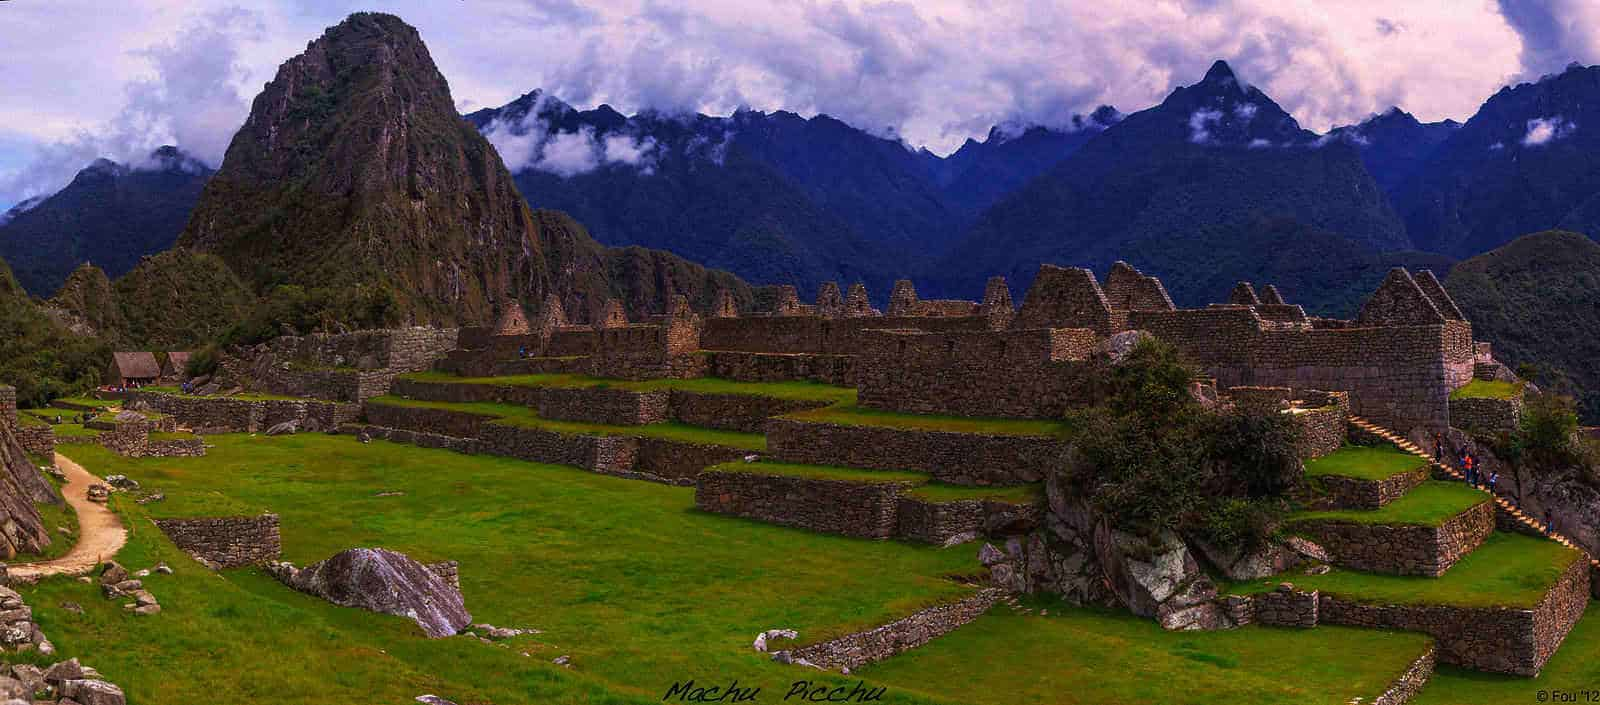 The skyline of Machu Picchu at dusk